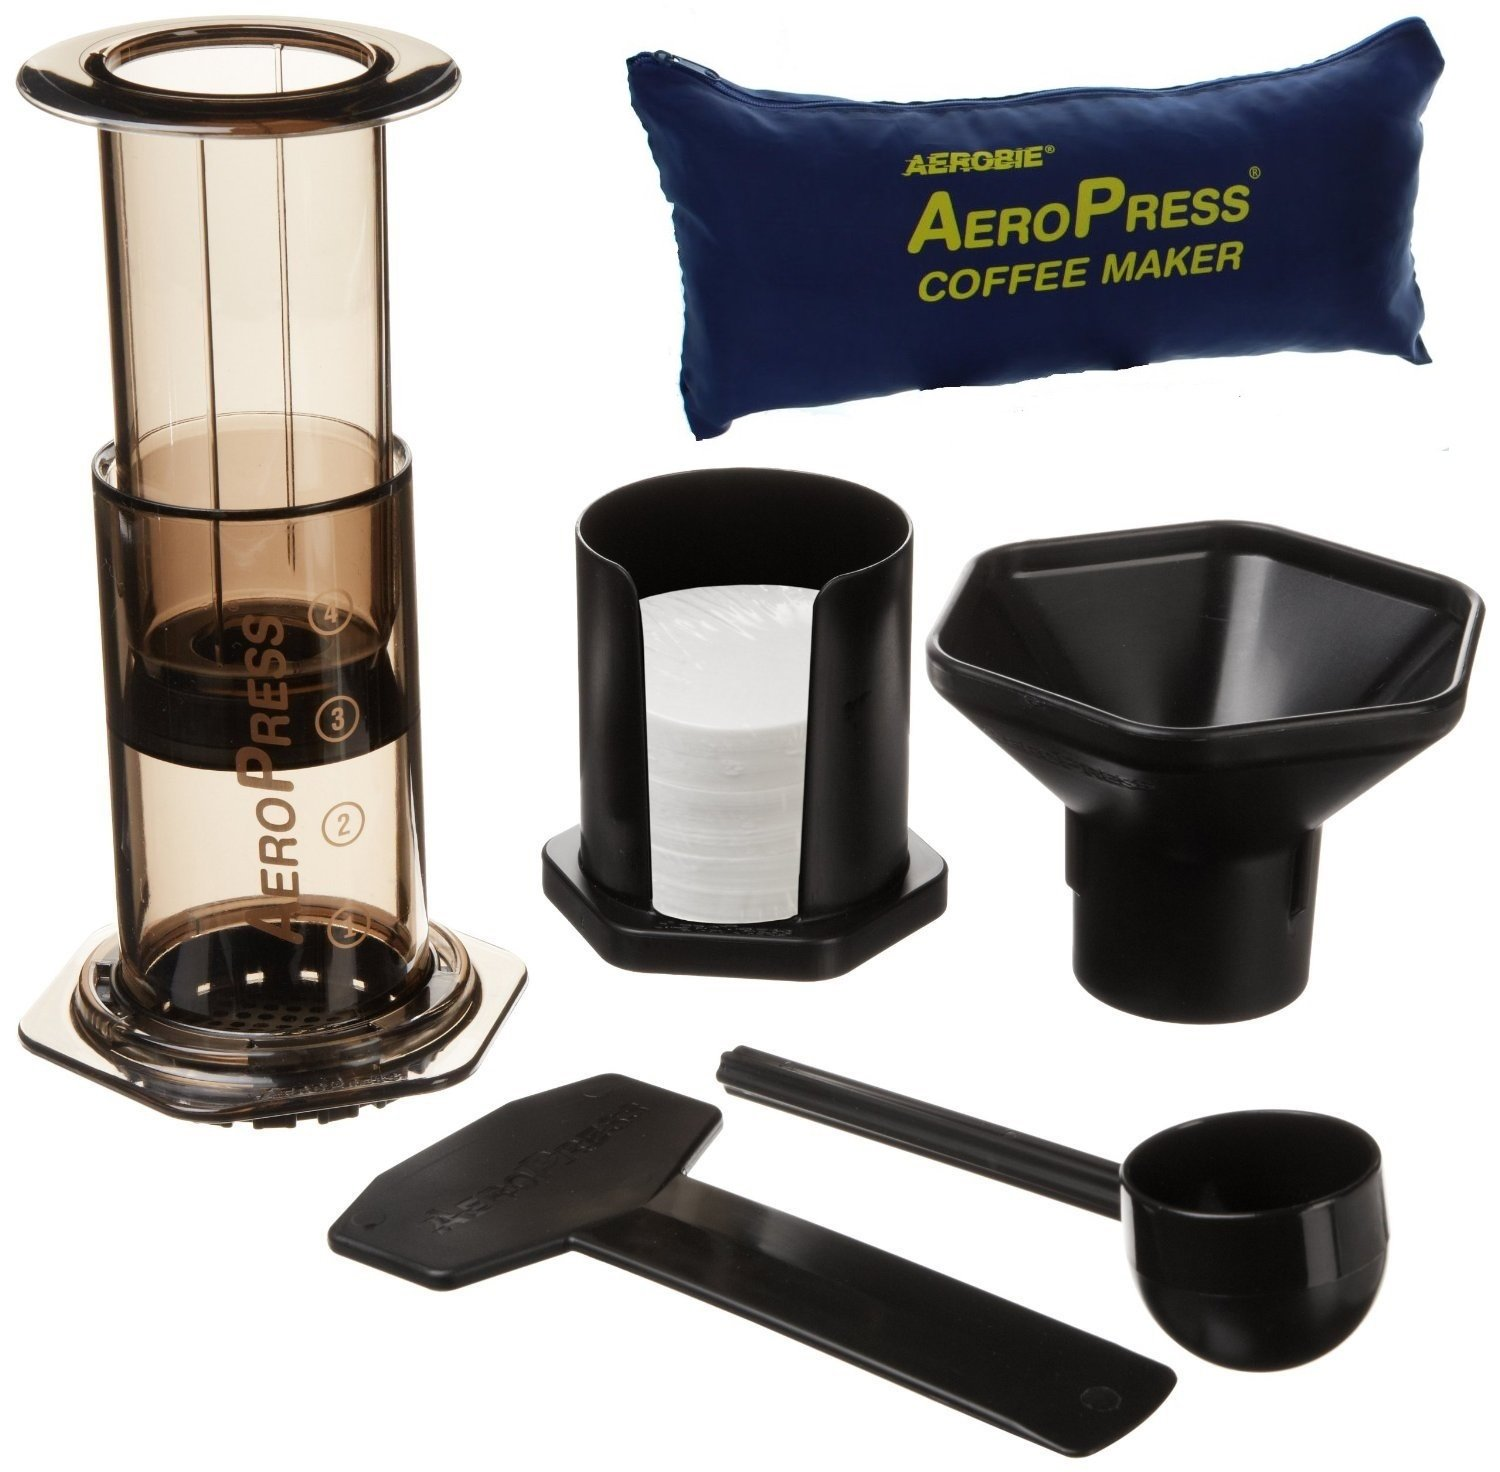 AeroPress 82R08 Coffee Maker with Tote Bag - Black Aerobie AeroPress 82R11